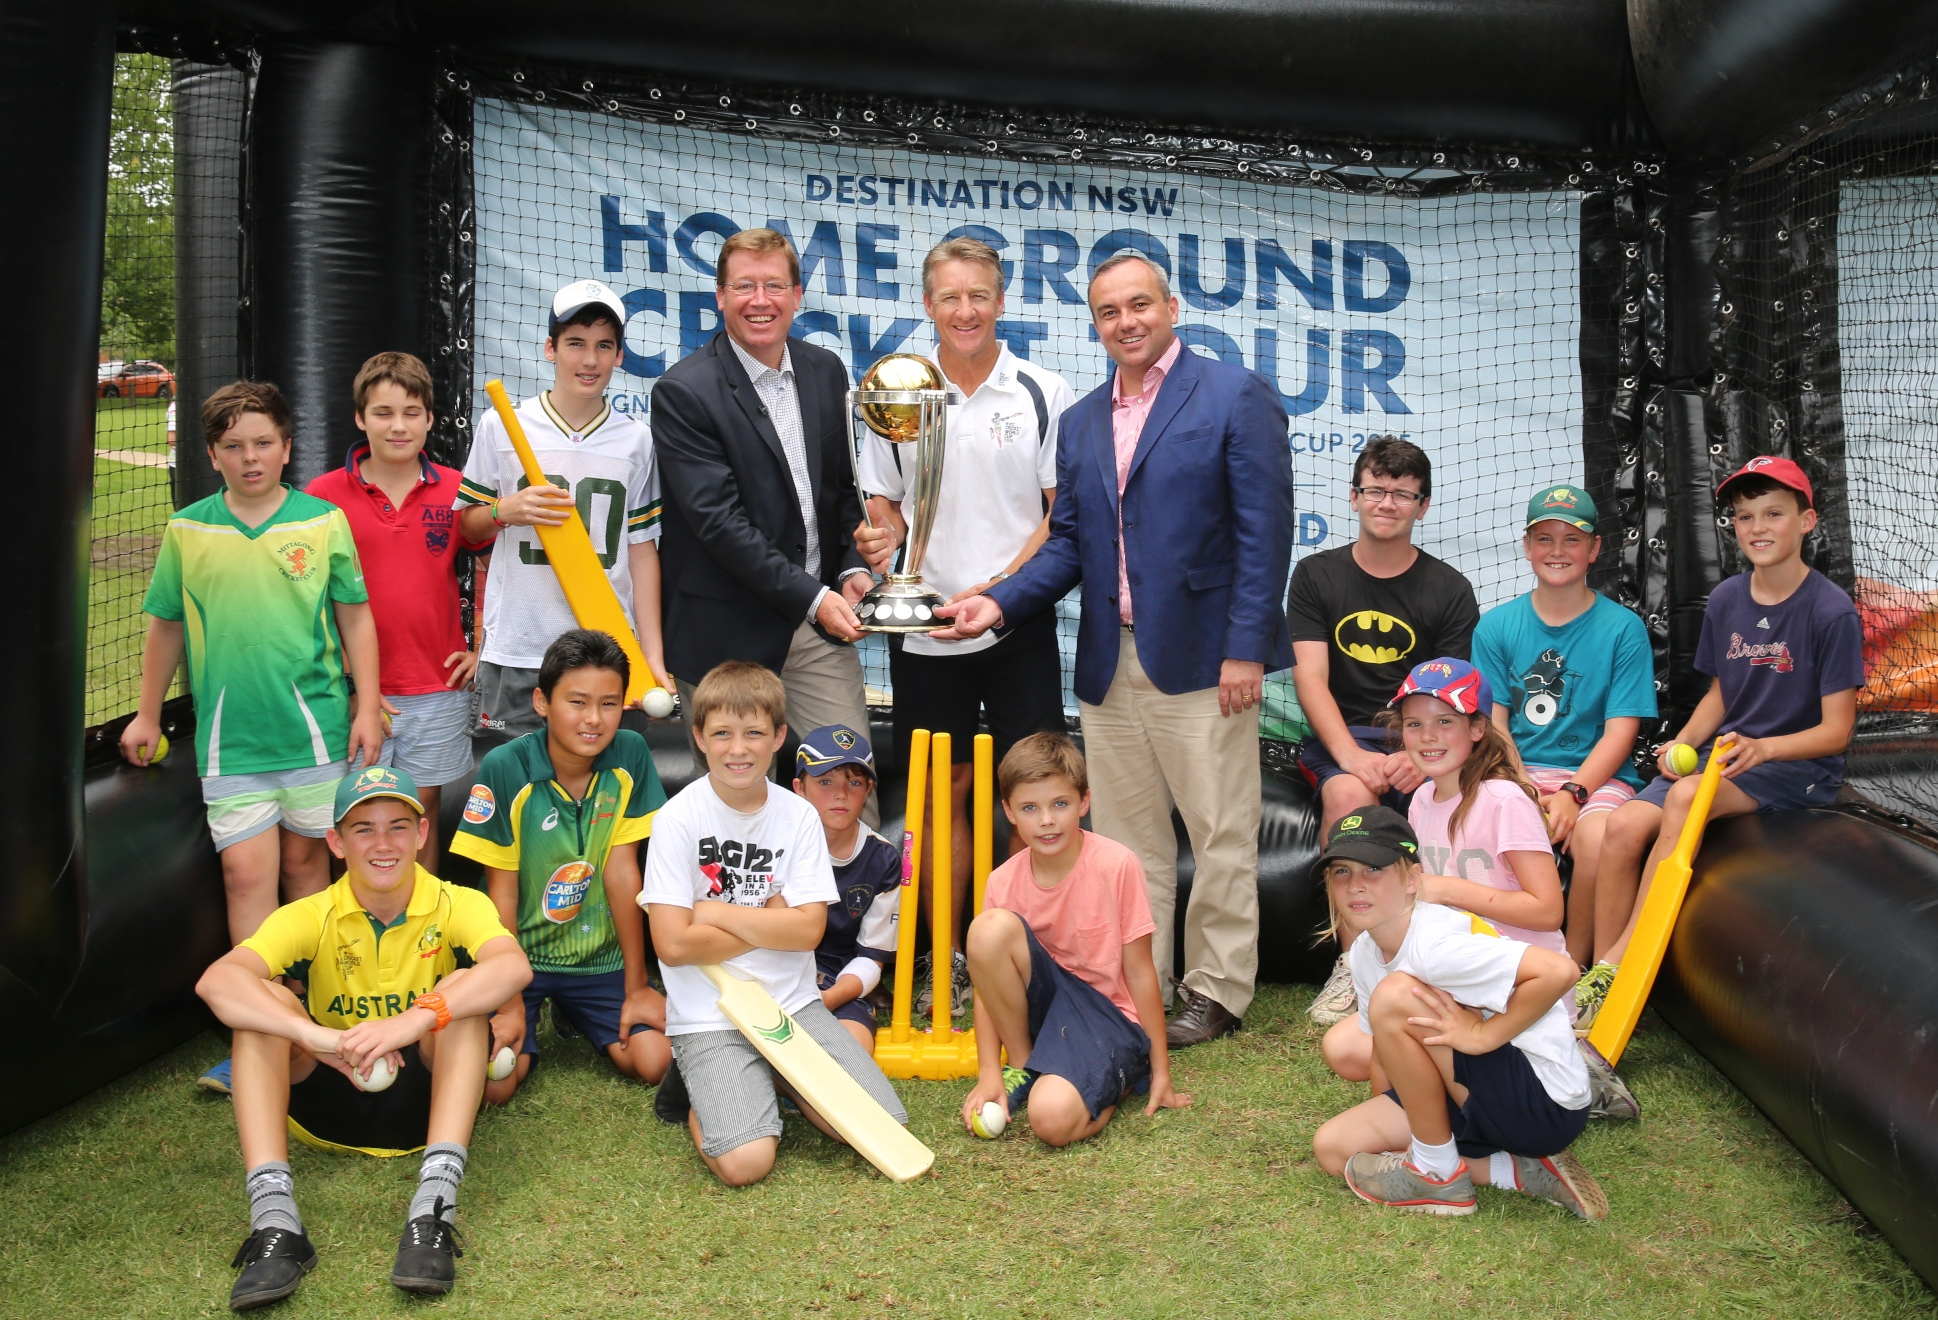 NSW Deputy Premier Troy Grant, former Australian cricketer Andy Bichel and Wollondilly MP Jai Rowell hold the ICC Cricket World Cup trophy, with encouragement from local cricketers.